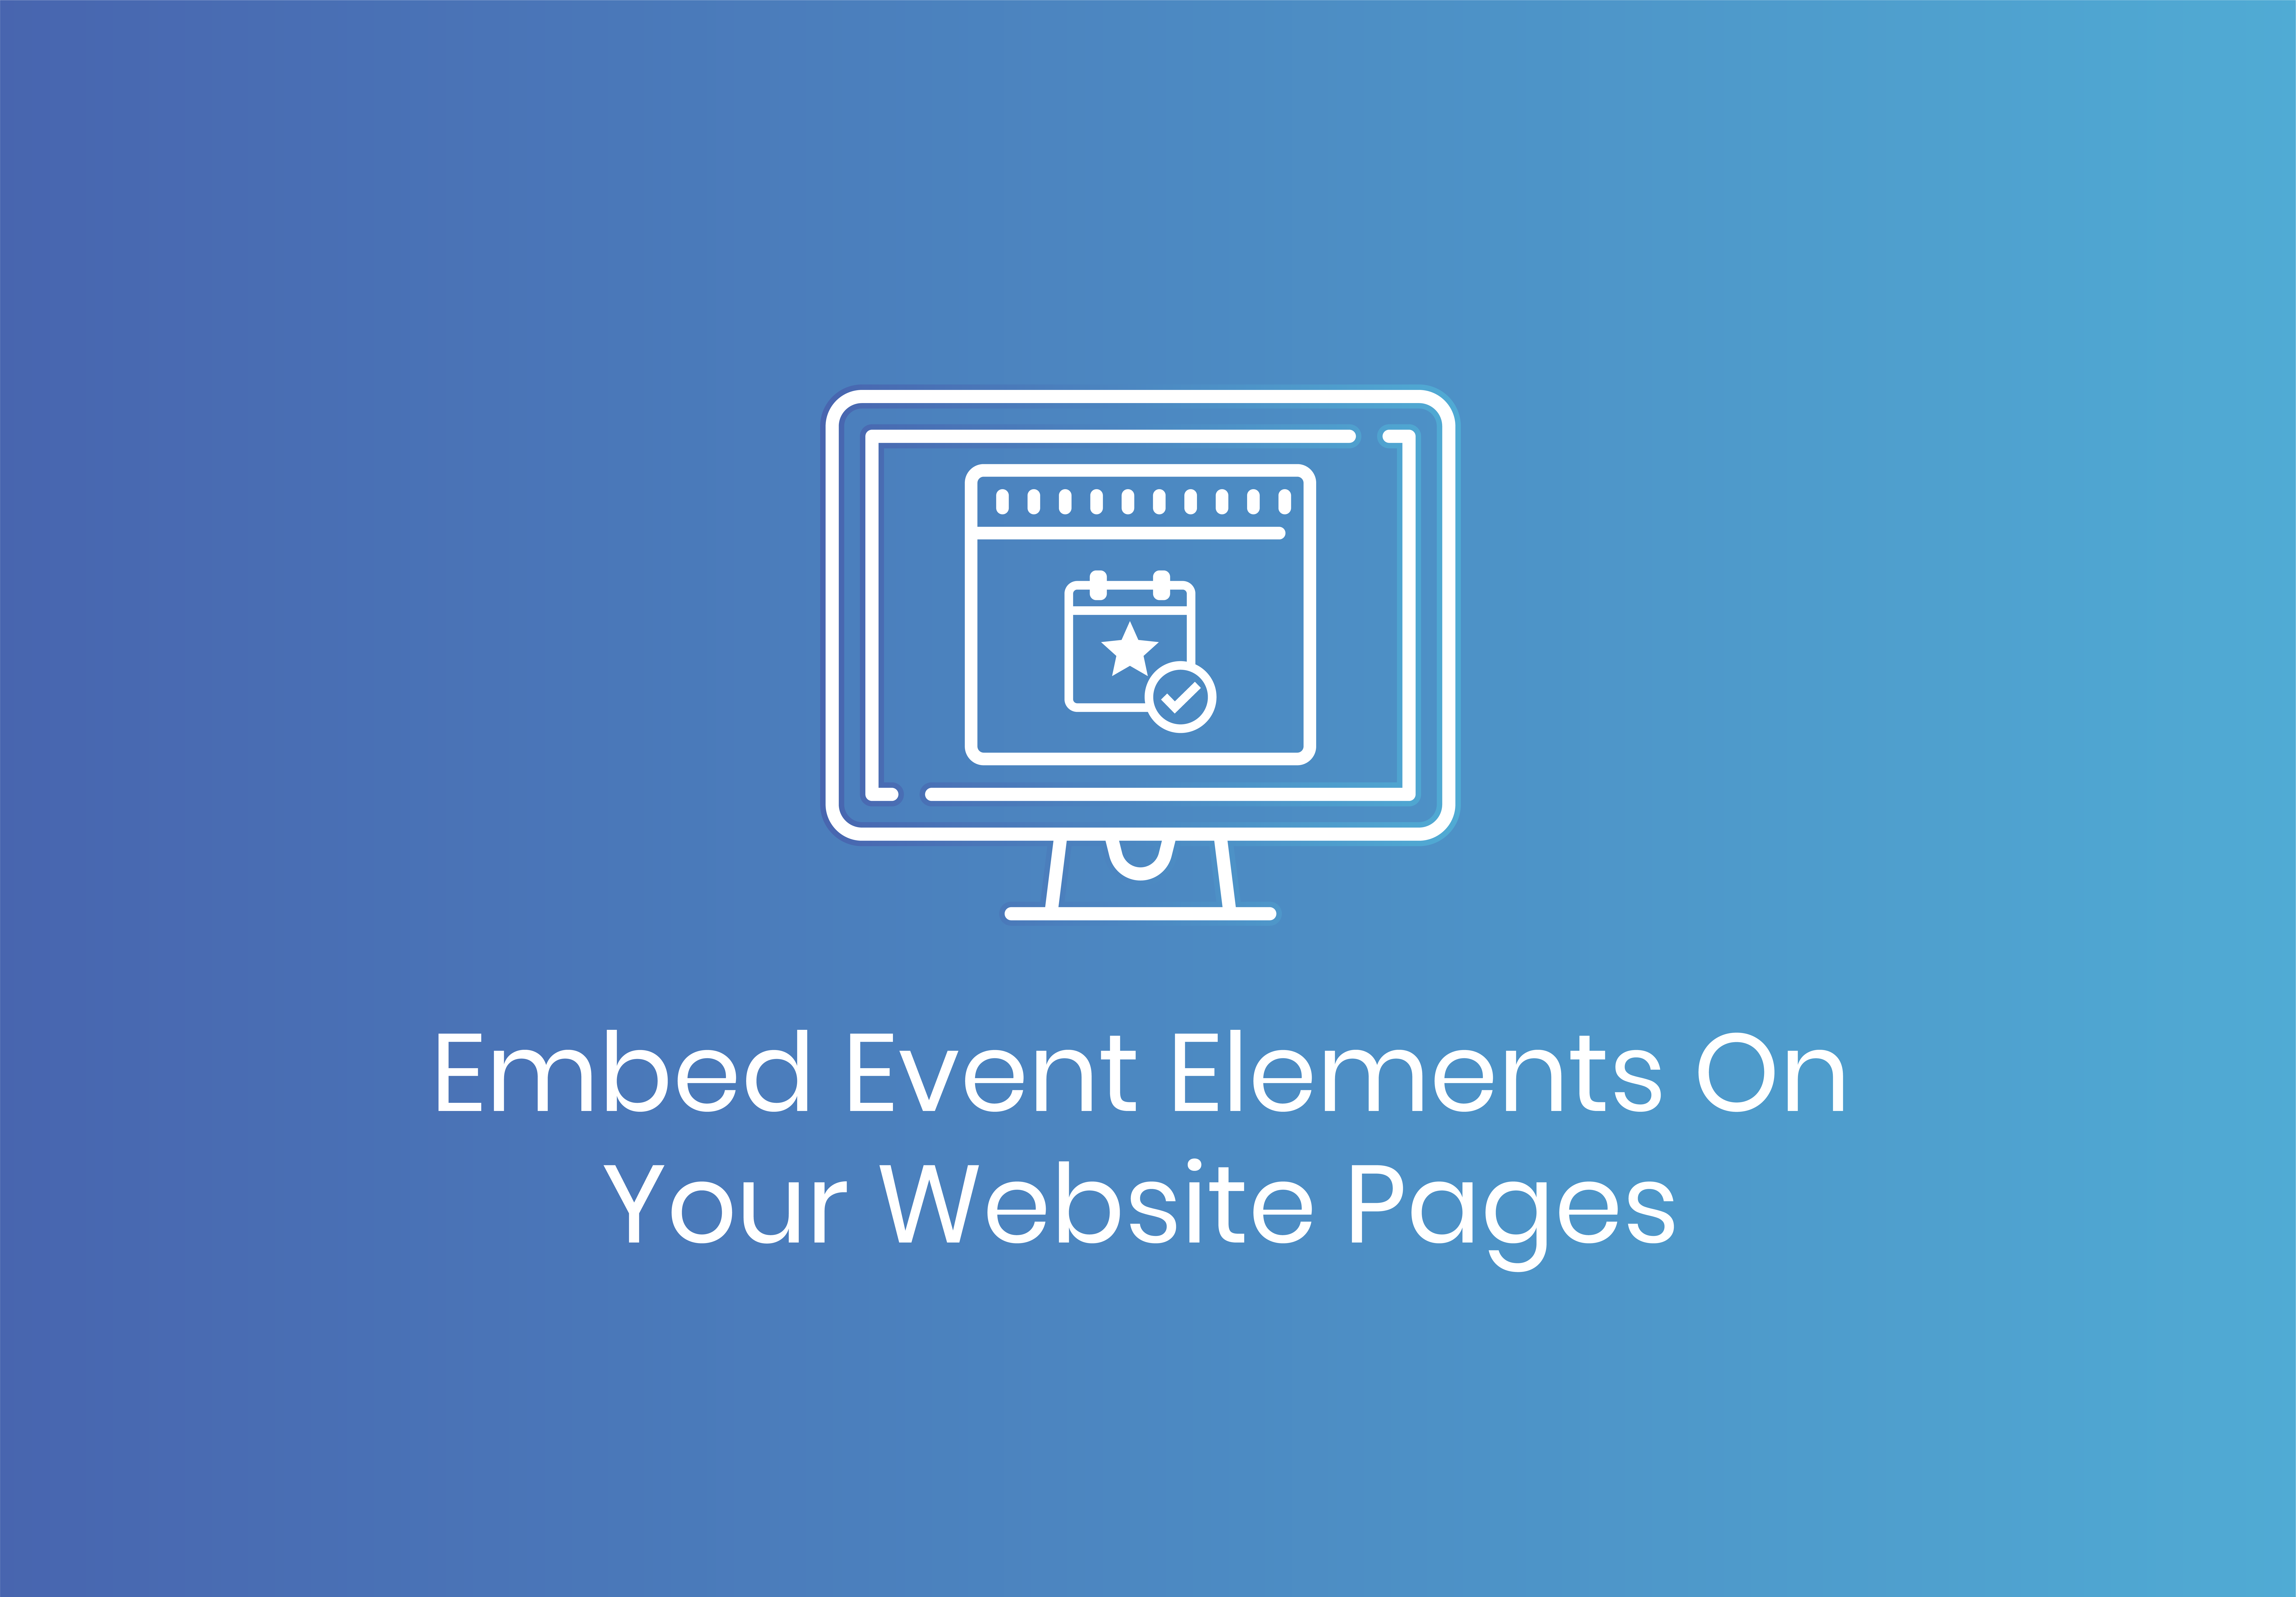 Embed your event landing pages, calendars, and forms on your website with Blackthorn Events